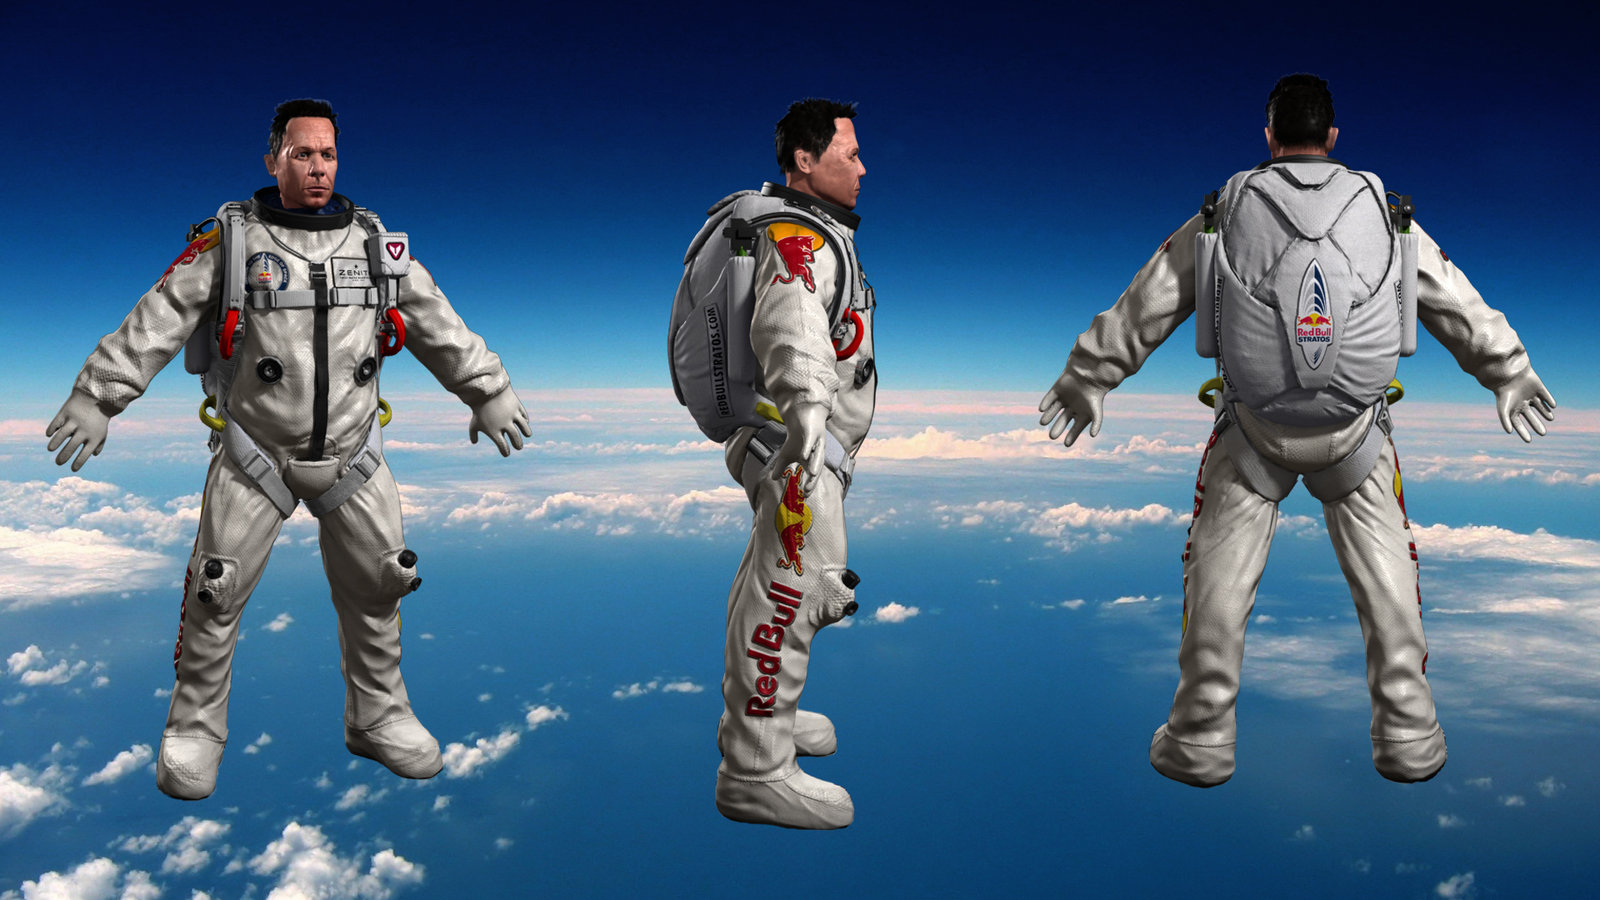 ArtStation Red Bull Stratos Felix Baumgartner Tan Wei Han